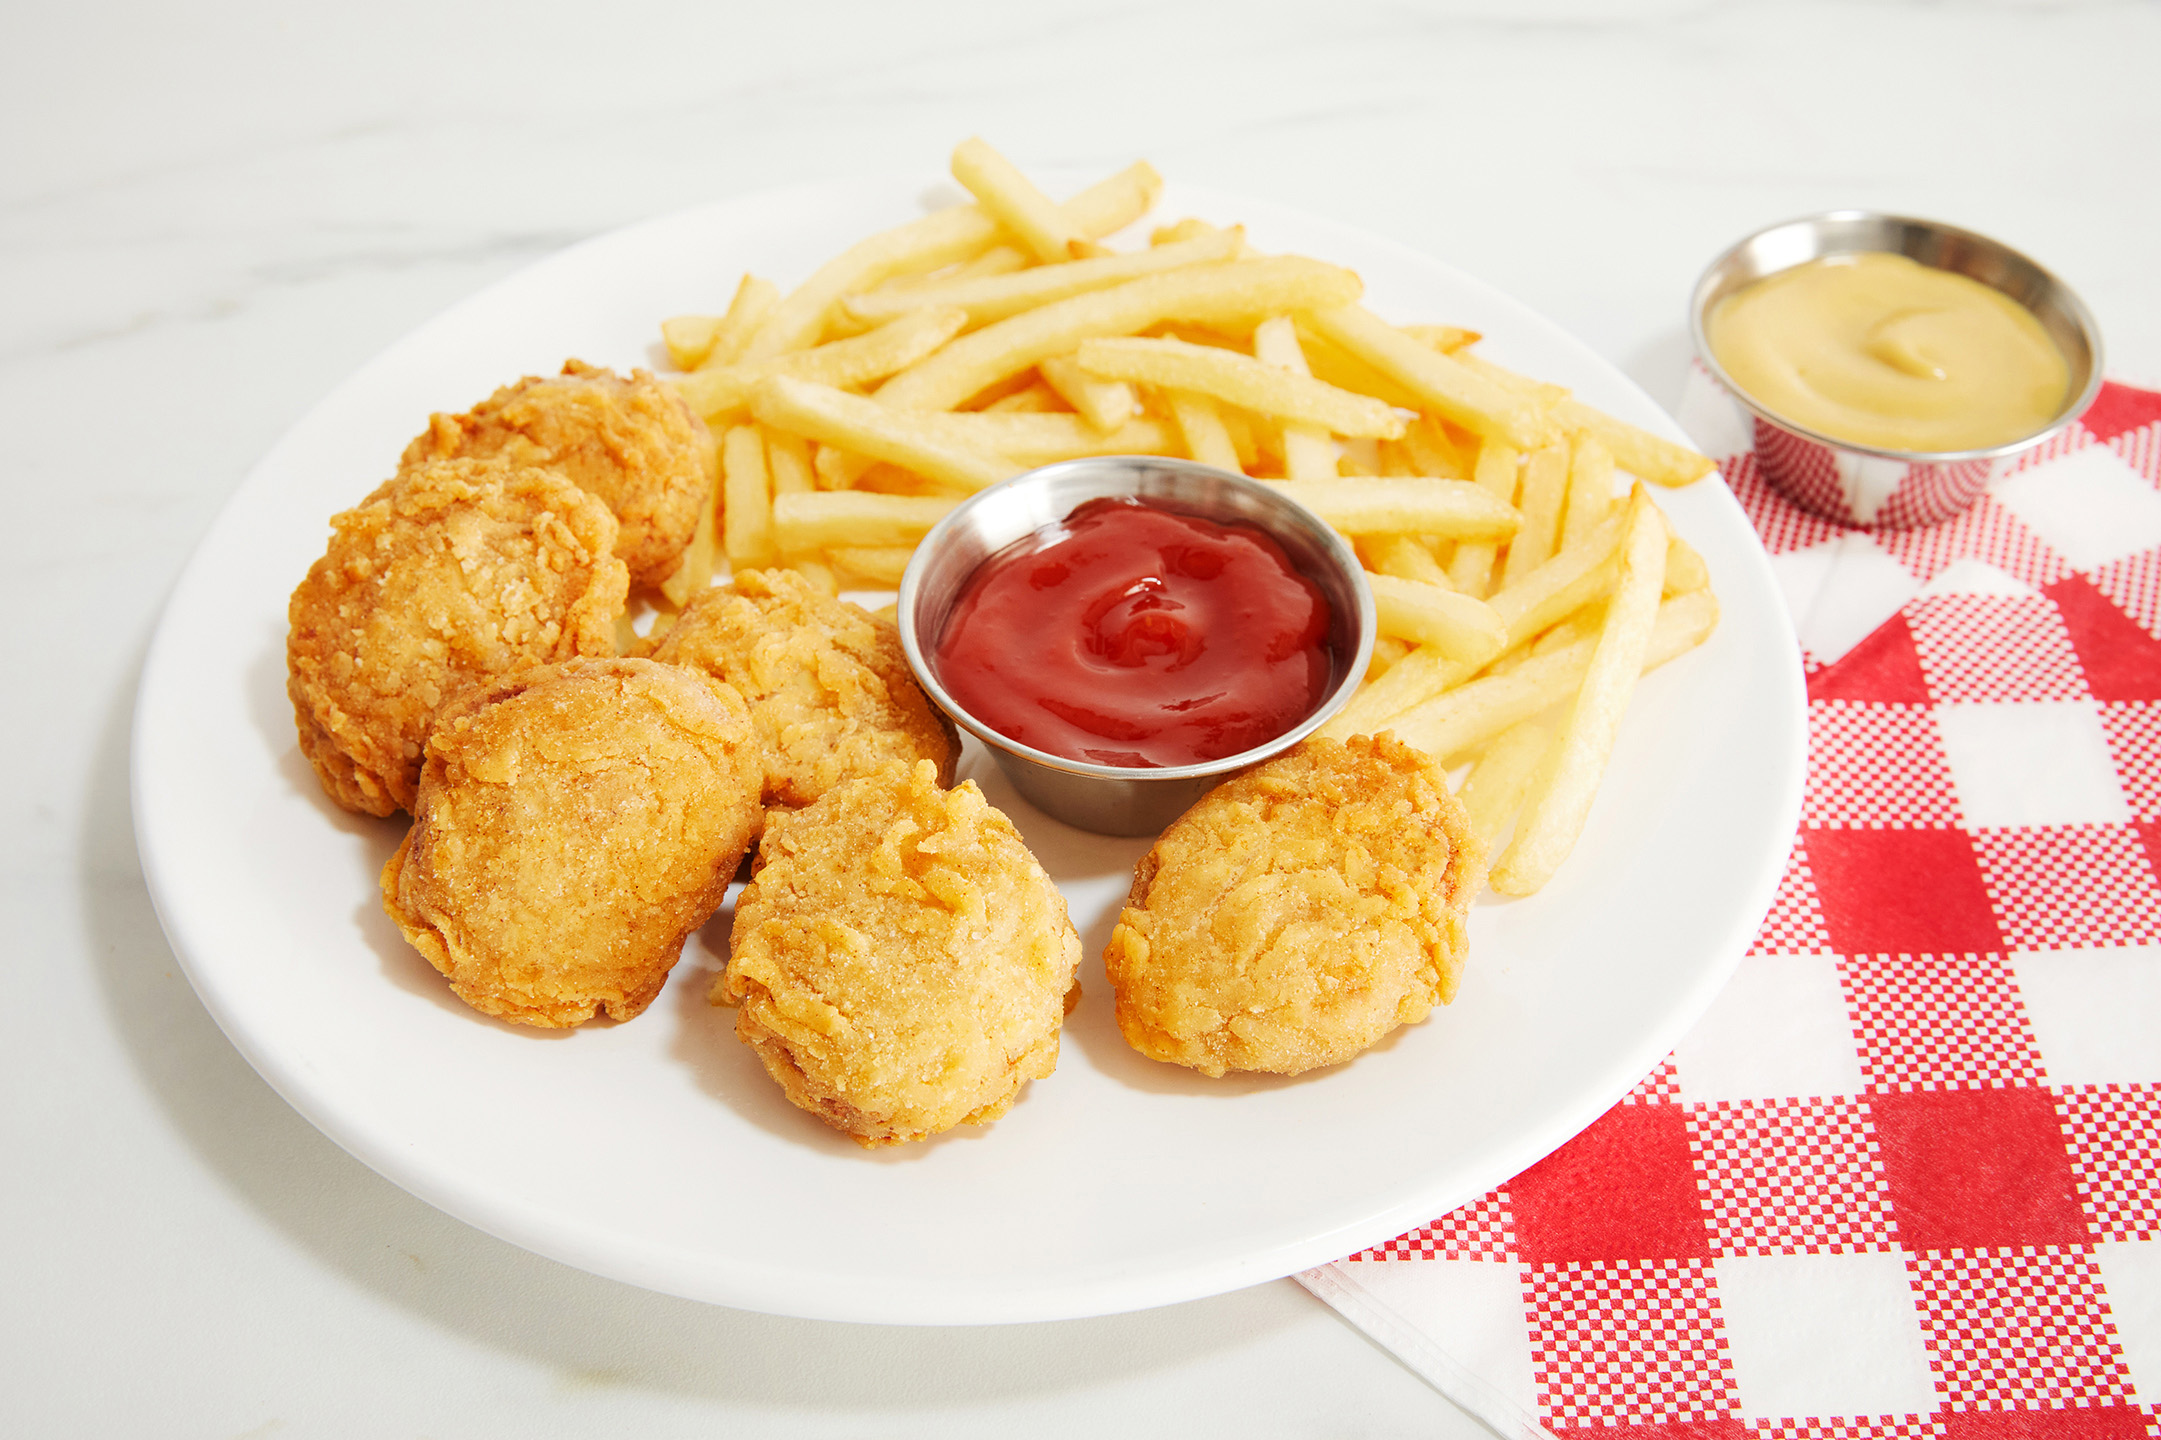 OZO brand Nuggets on a plate.